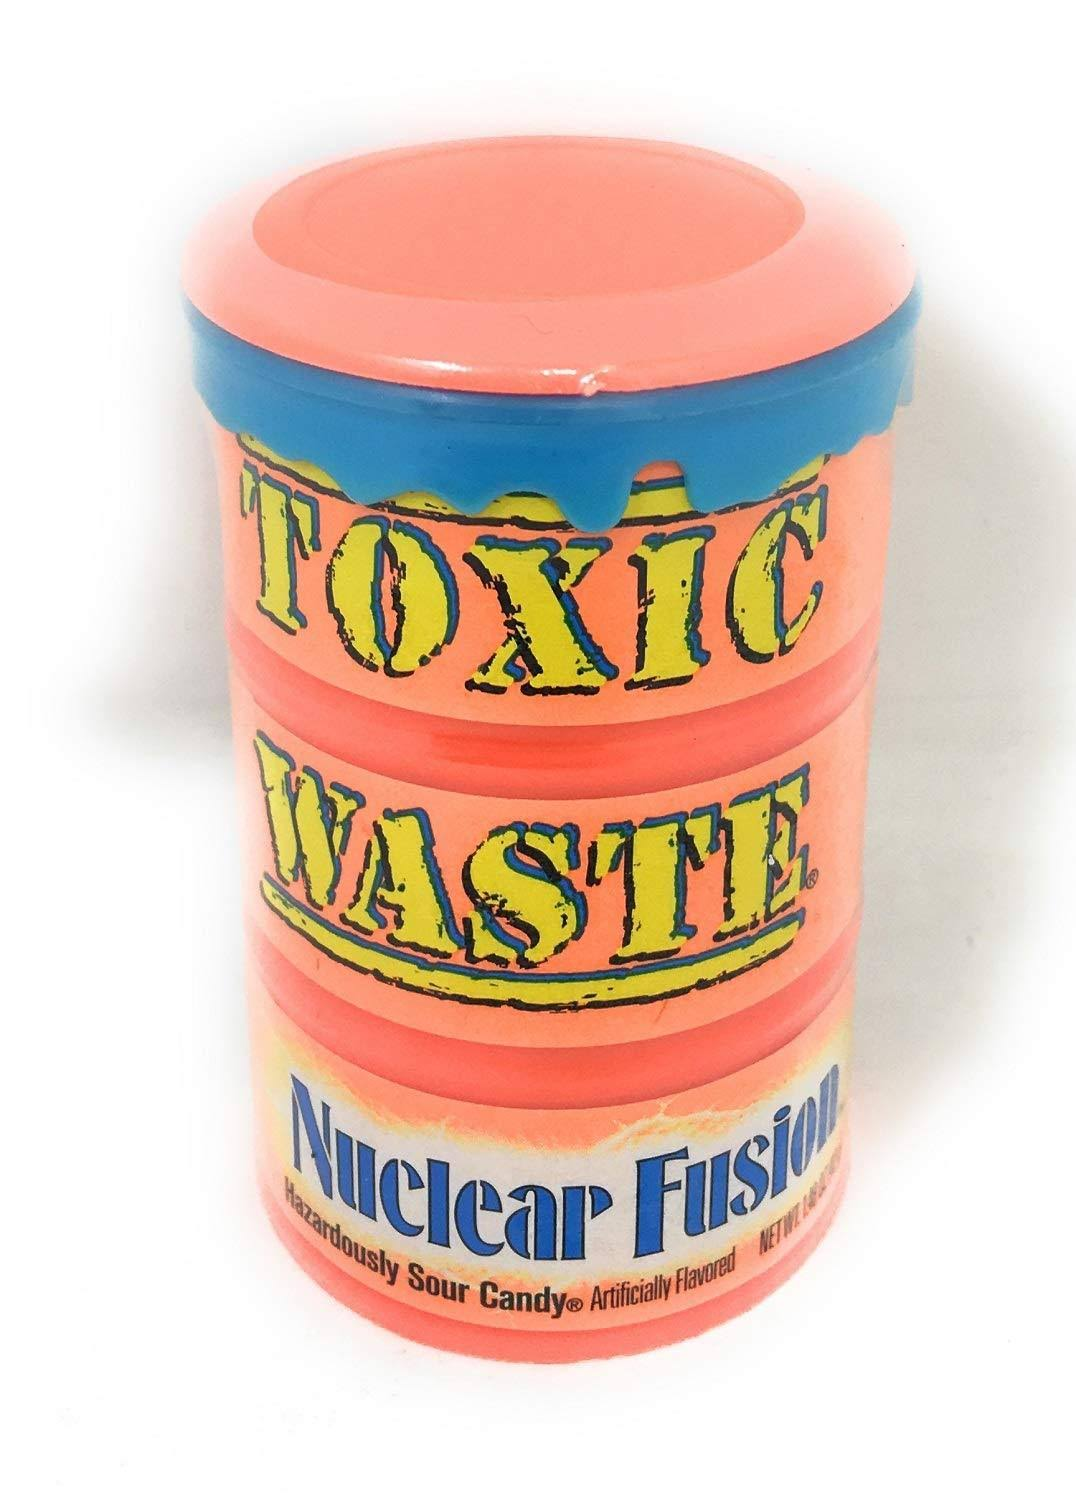 Toxic Waste Nuclear Fusion Drums Extreme Sour Candy - 1.48oz, 12ct